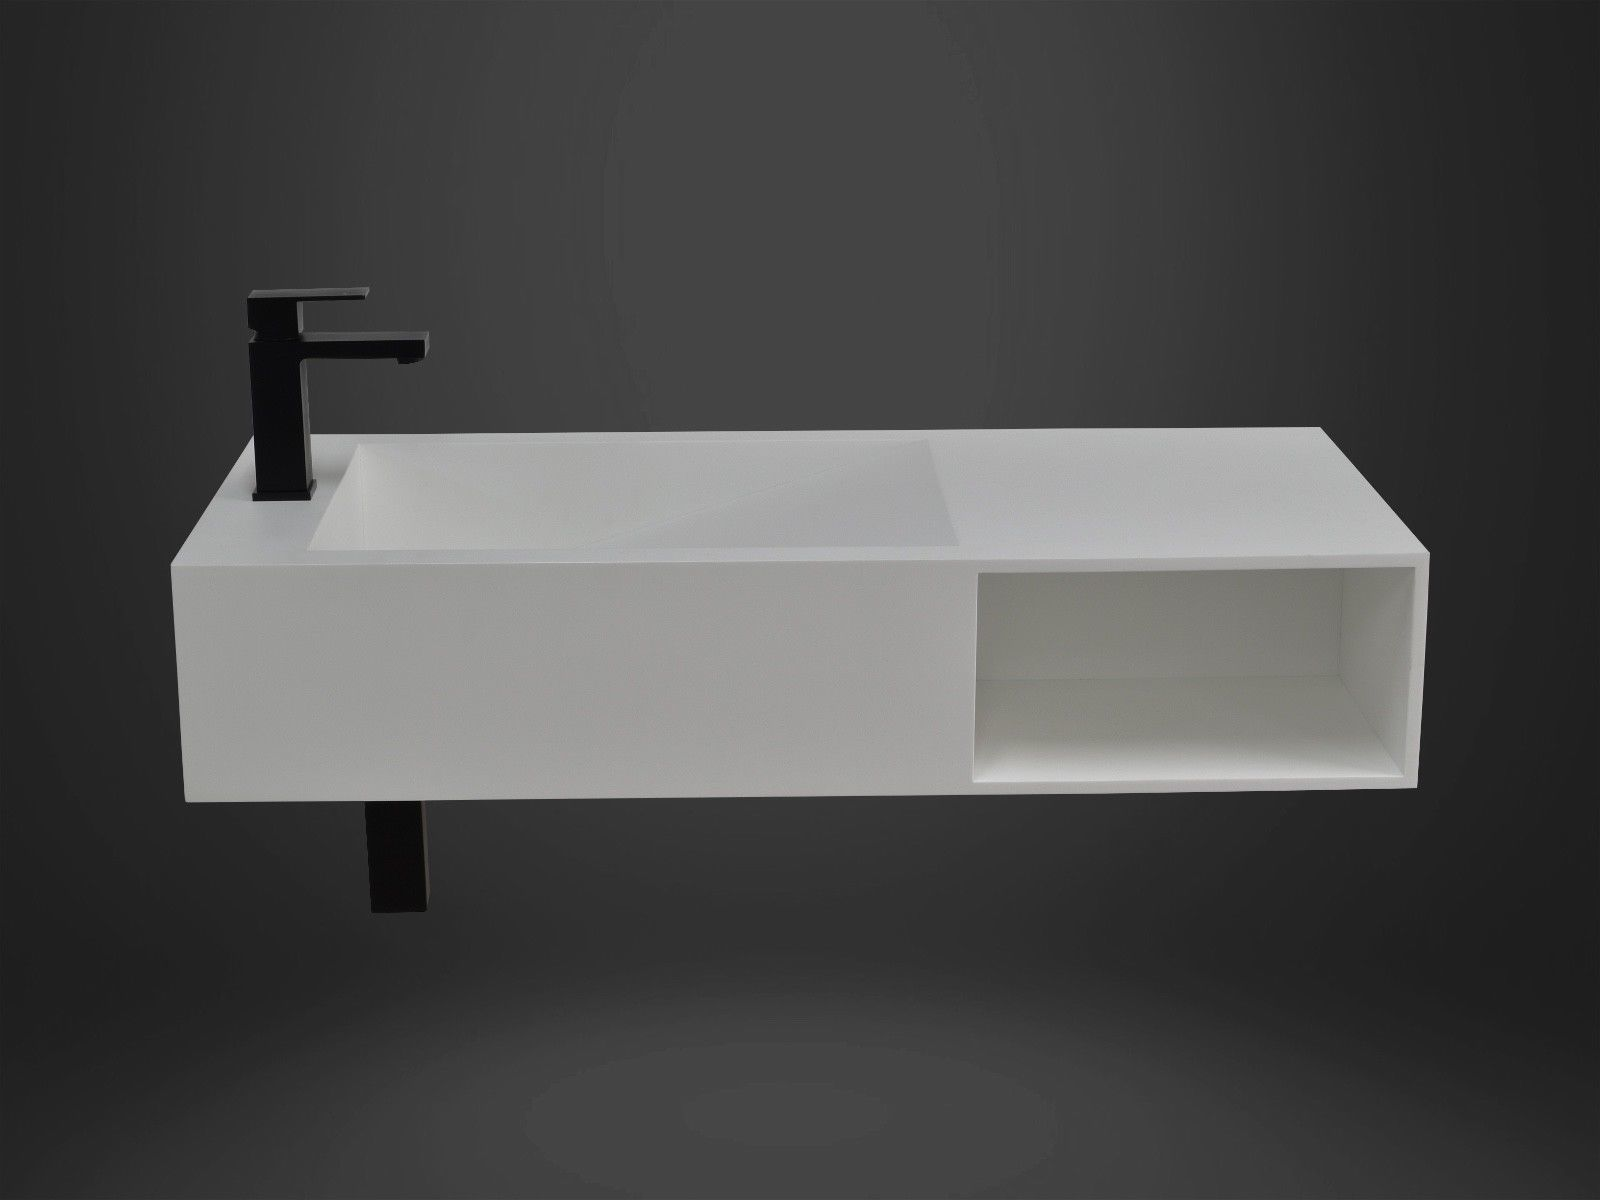 Bathroom 1000mm Wall Hung Basin Vanity - Stone - Solid Surface